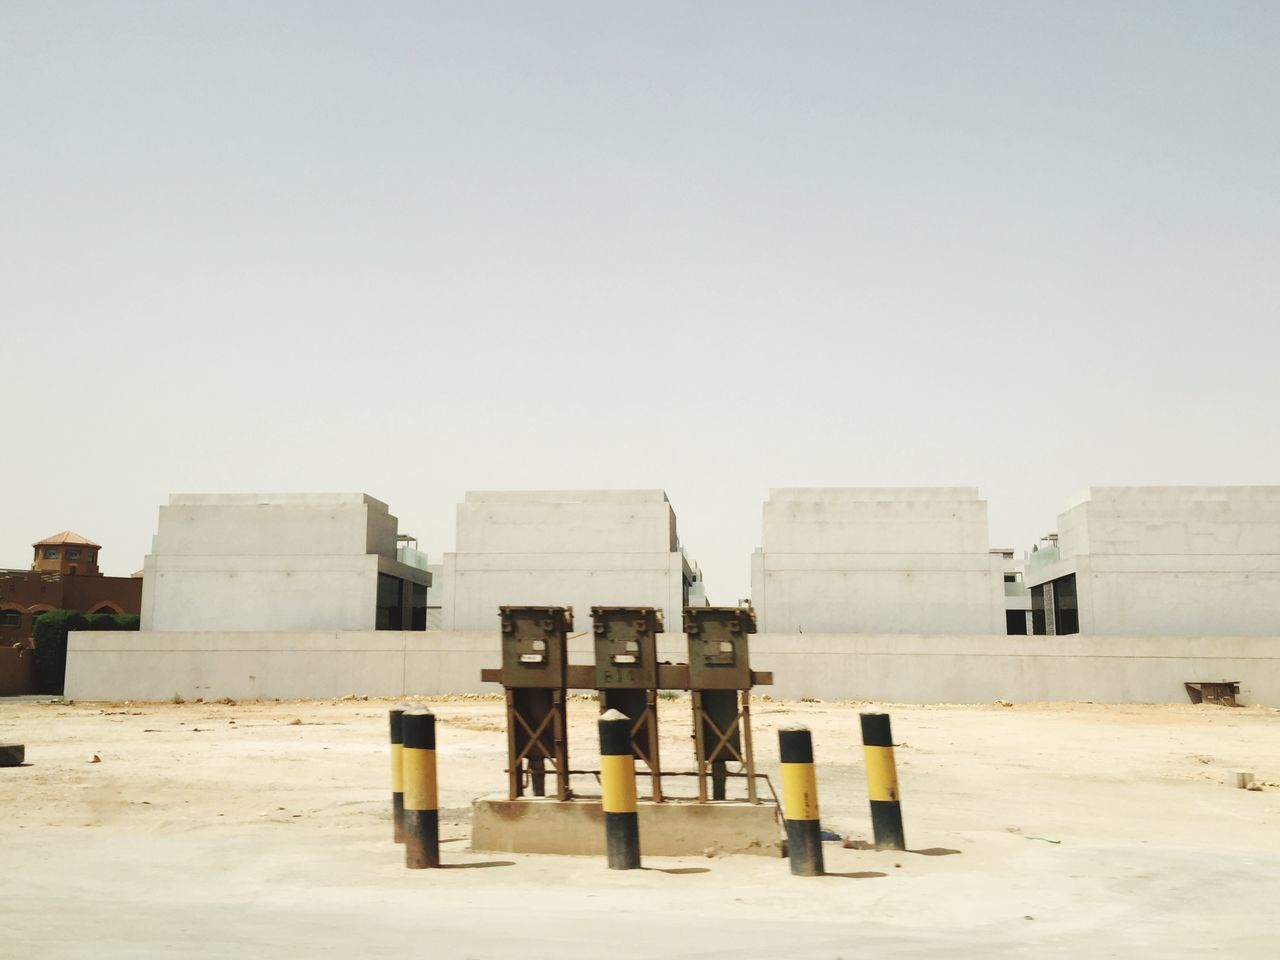 Suburban monuments Clear Sky Copy Space Sand Beach Day Outdoors No People Sky Nature Monument Monuments Monumental  Suburbia Desert Landscape Desert Suburb Empty Places Desert Empty Nothing To Do Blocked Path Block Of Flats